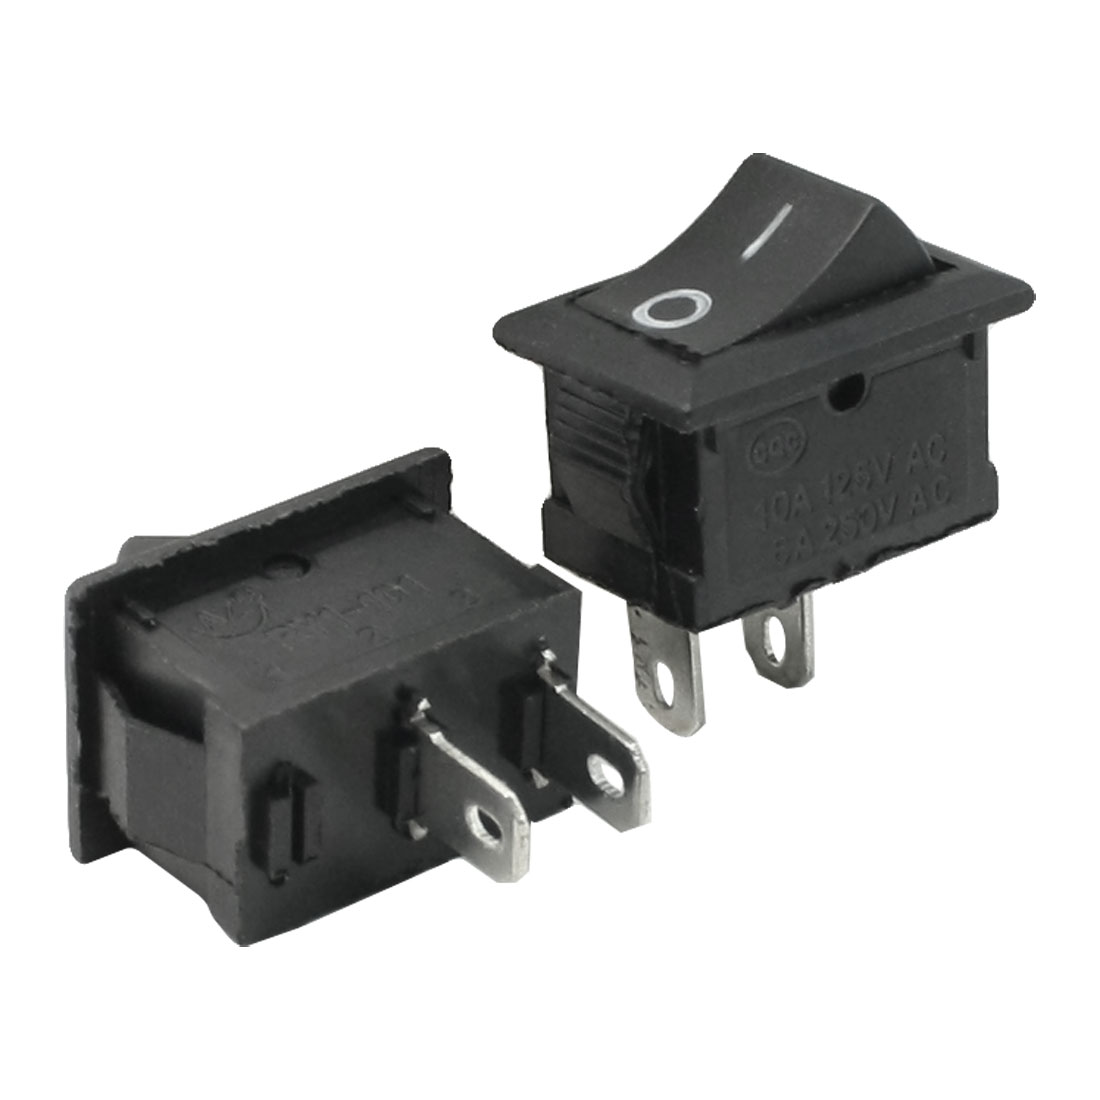 2 x Plunge Router AC 250V/6A 125V/10A Single Pole ON/OFF Rocker Switch